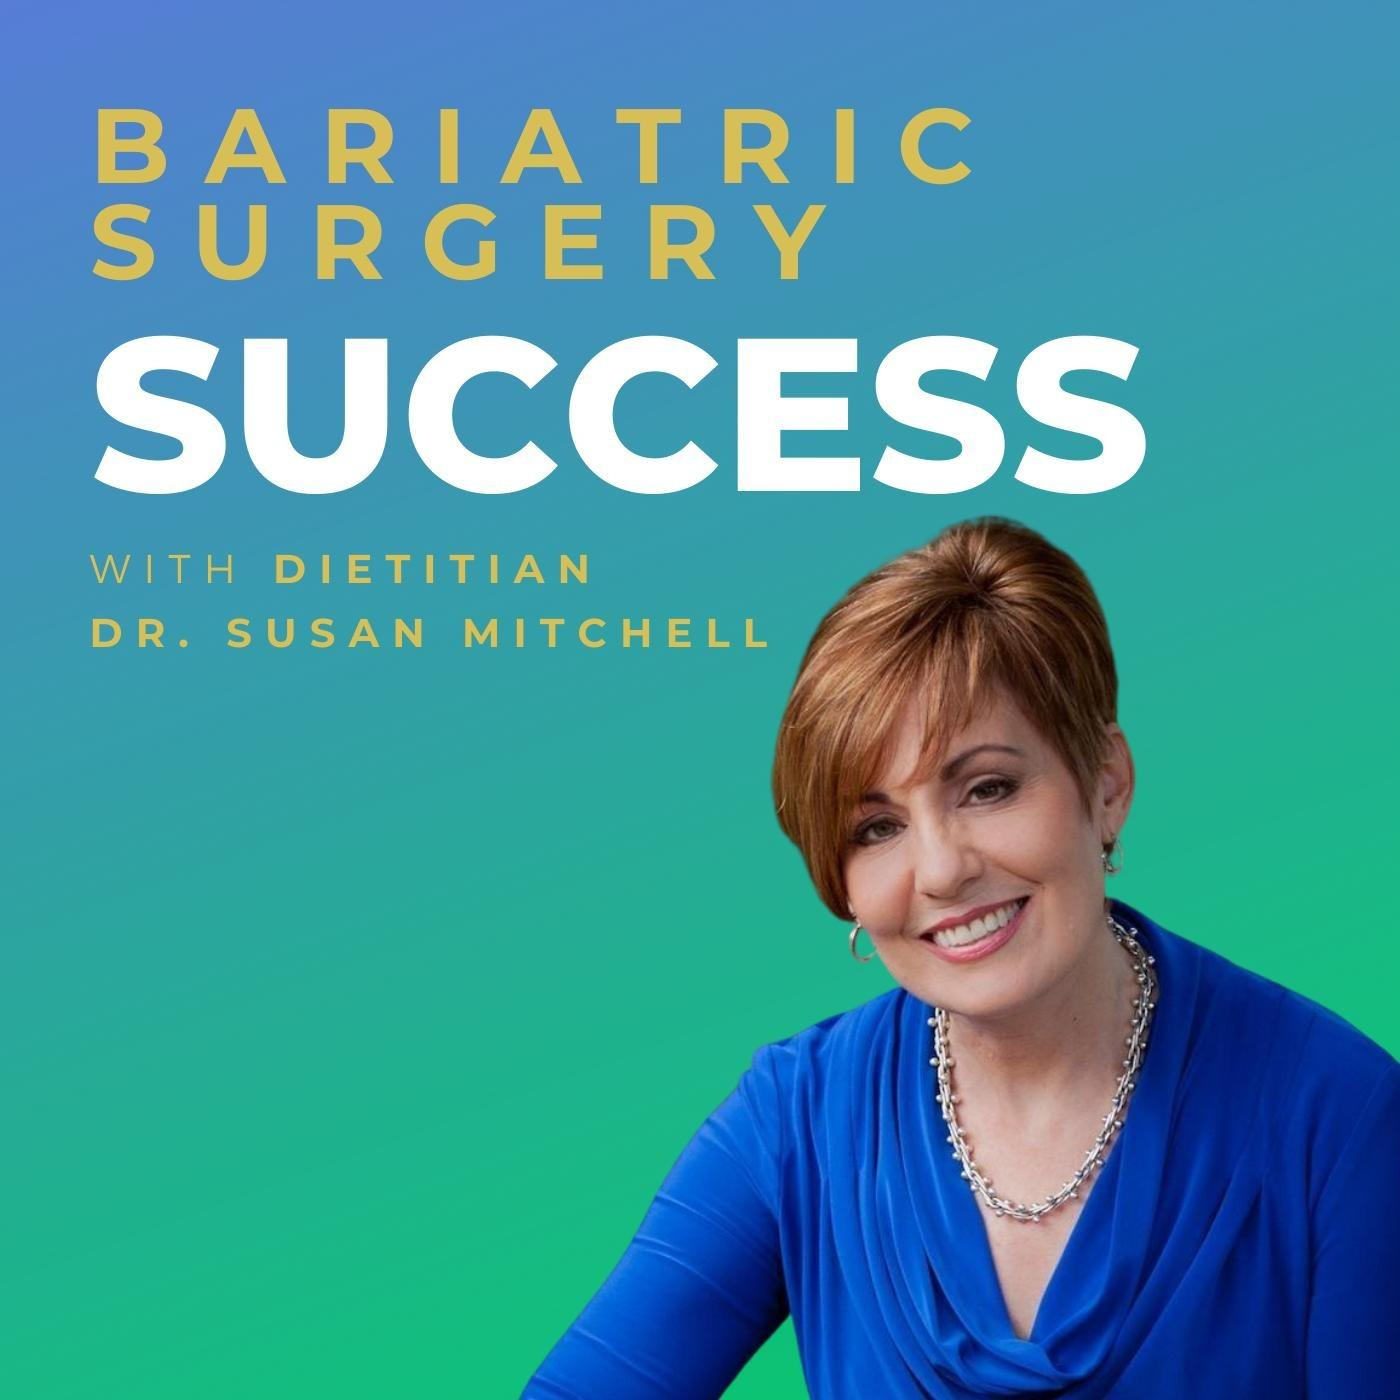 Bariatric Surgery Success